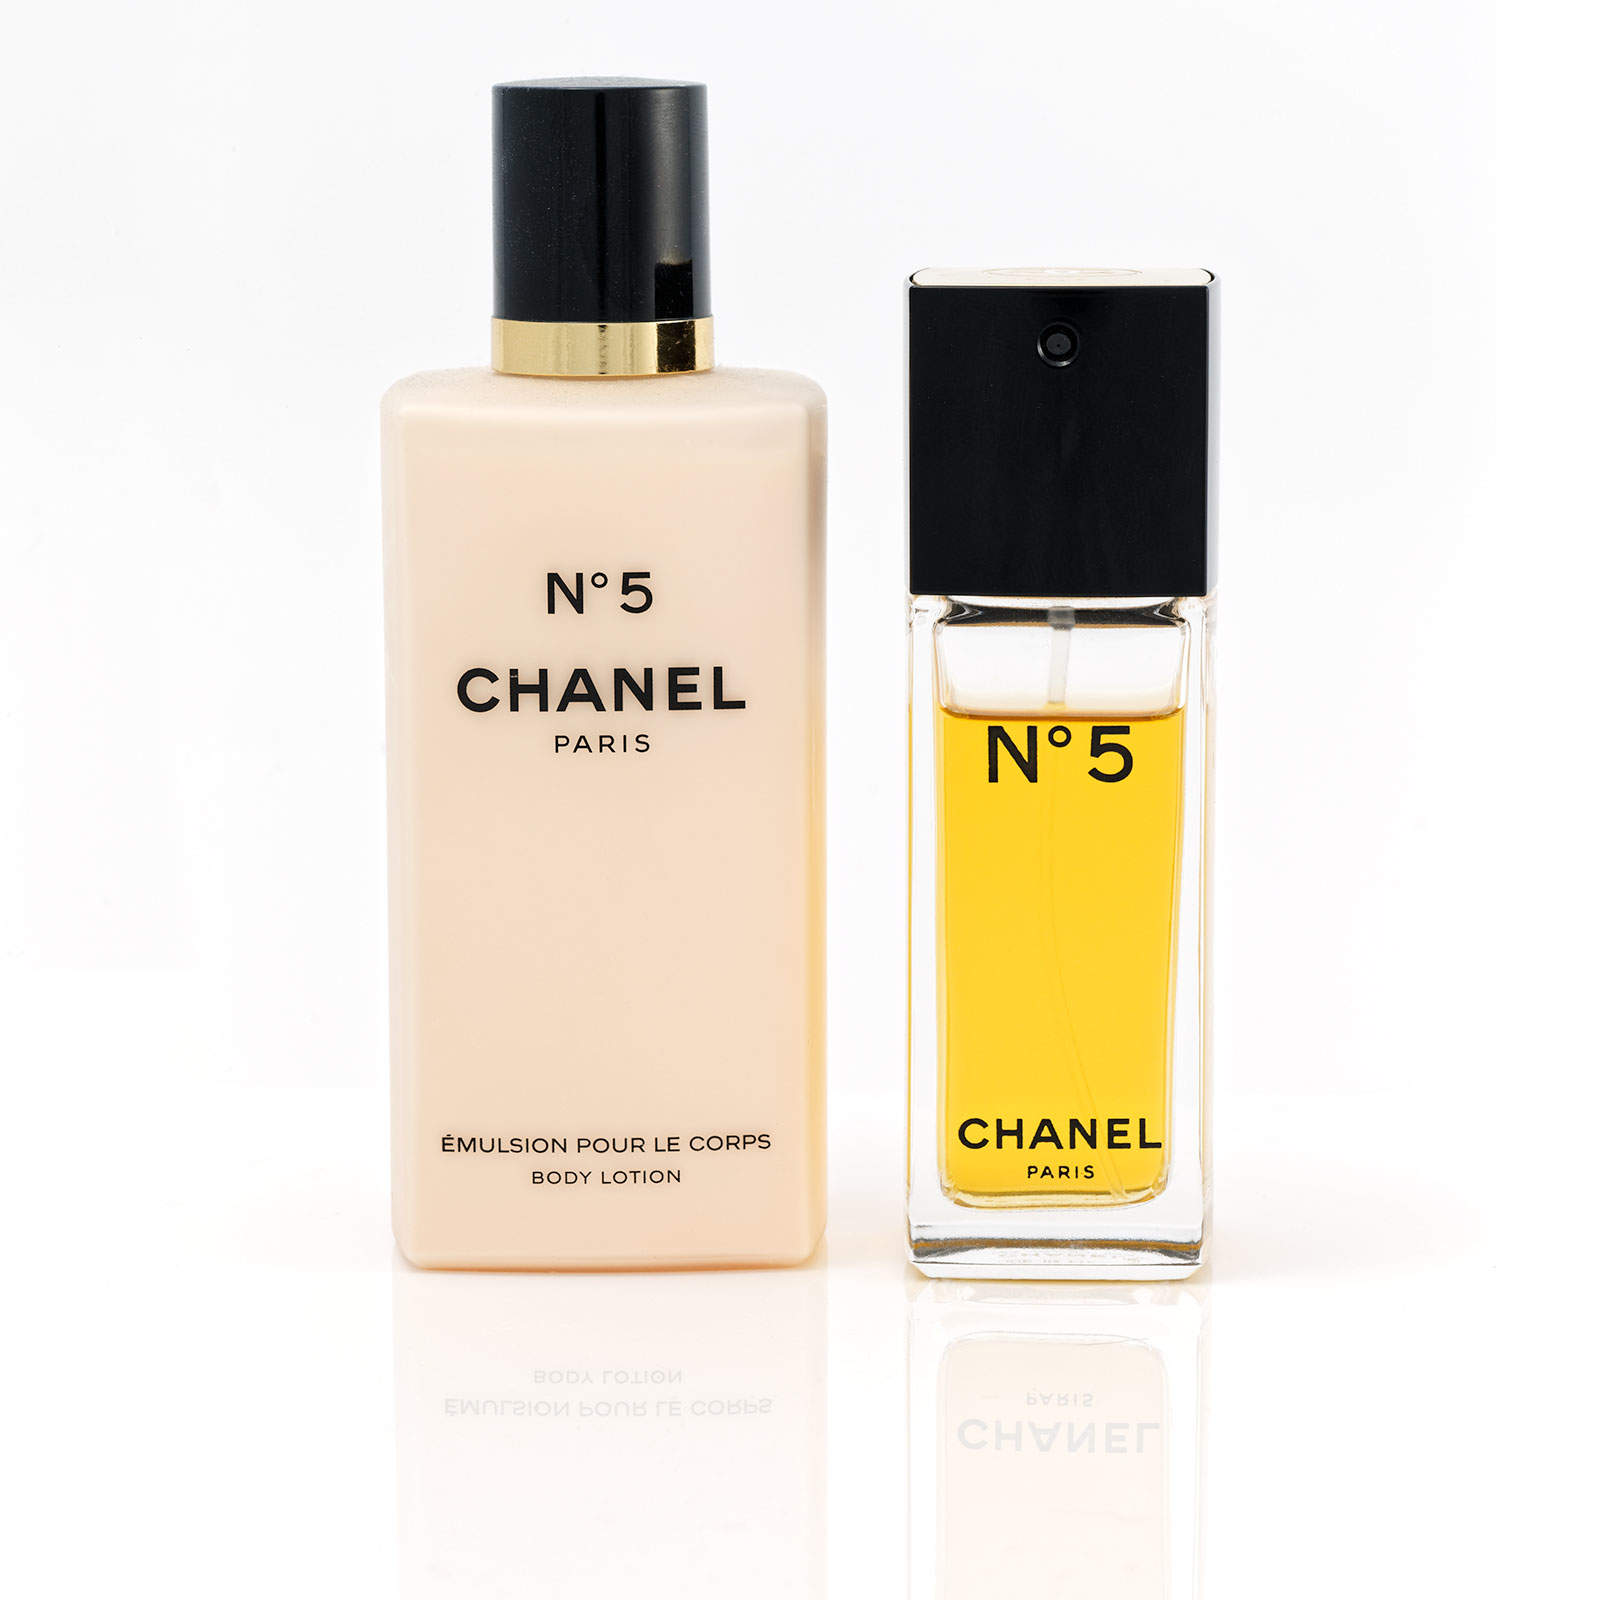 fc16b32ed2 Chanel No. 5: A Perfume Every Woman Should Own – The Style Bouquet